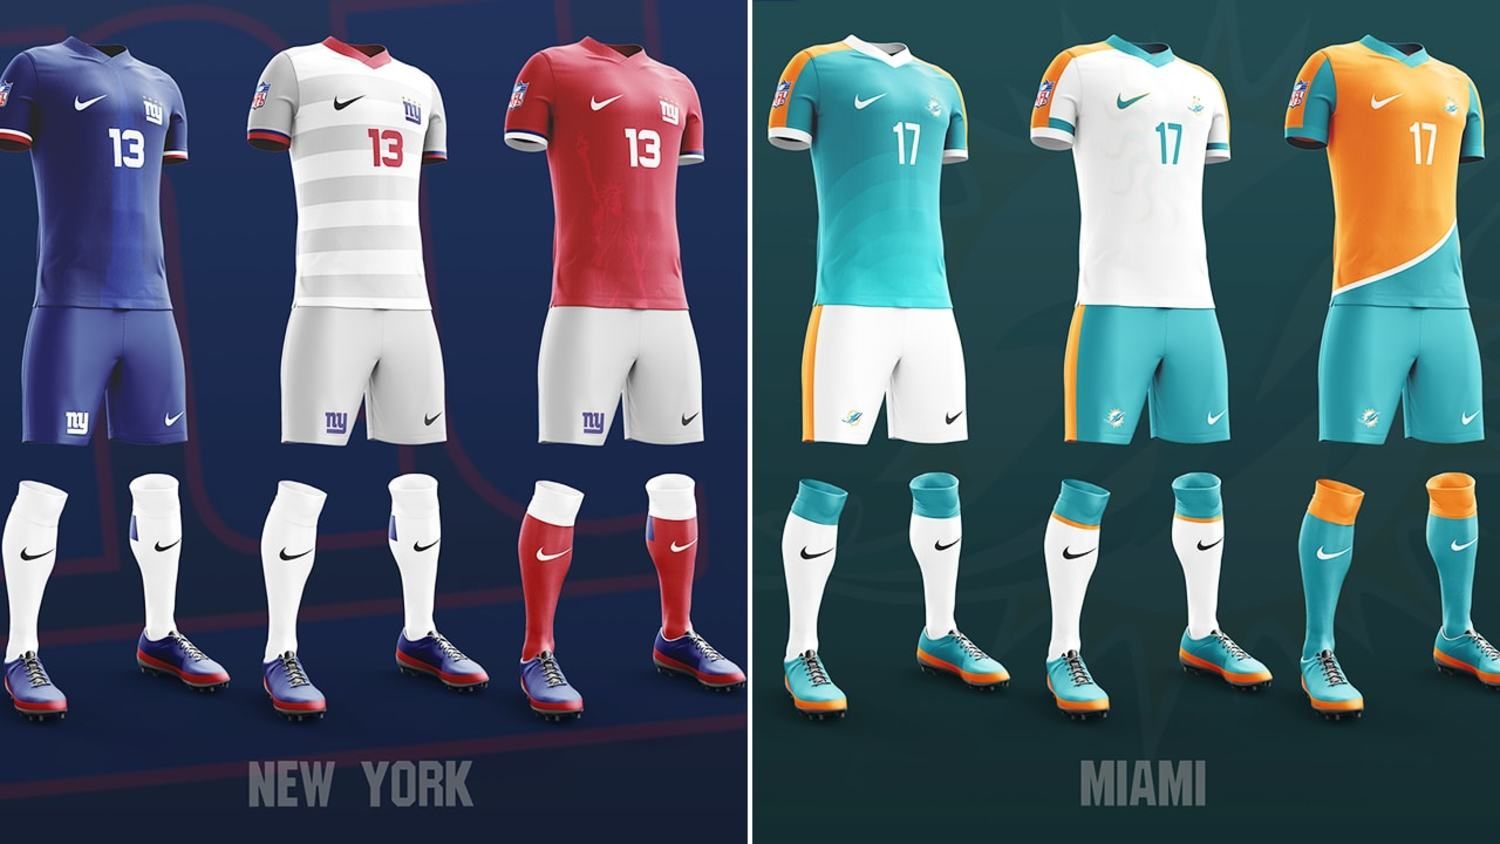 Amazing NFL x Football Concept Kits